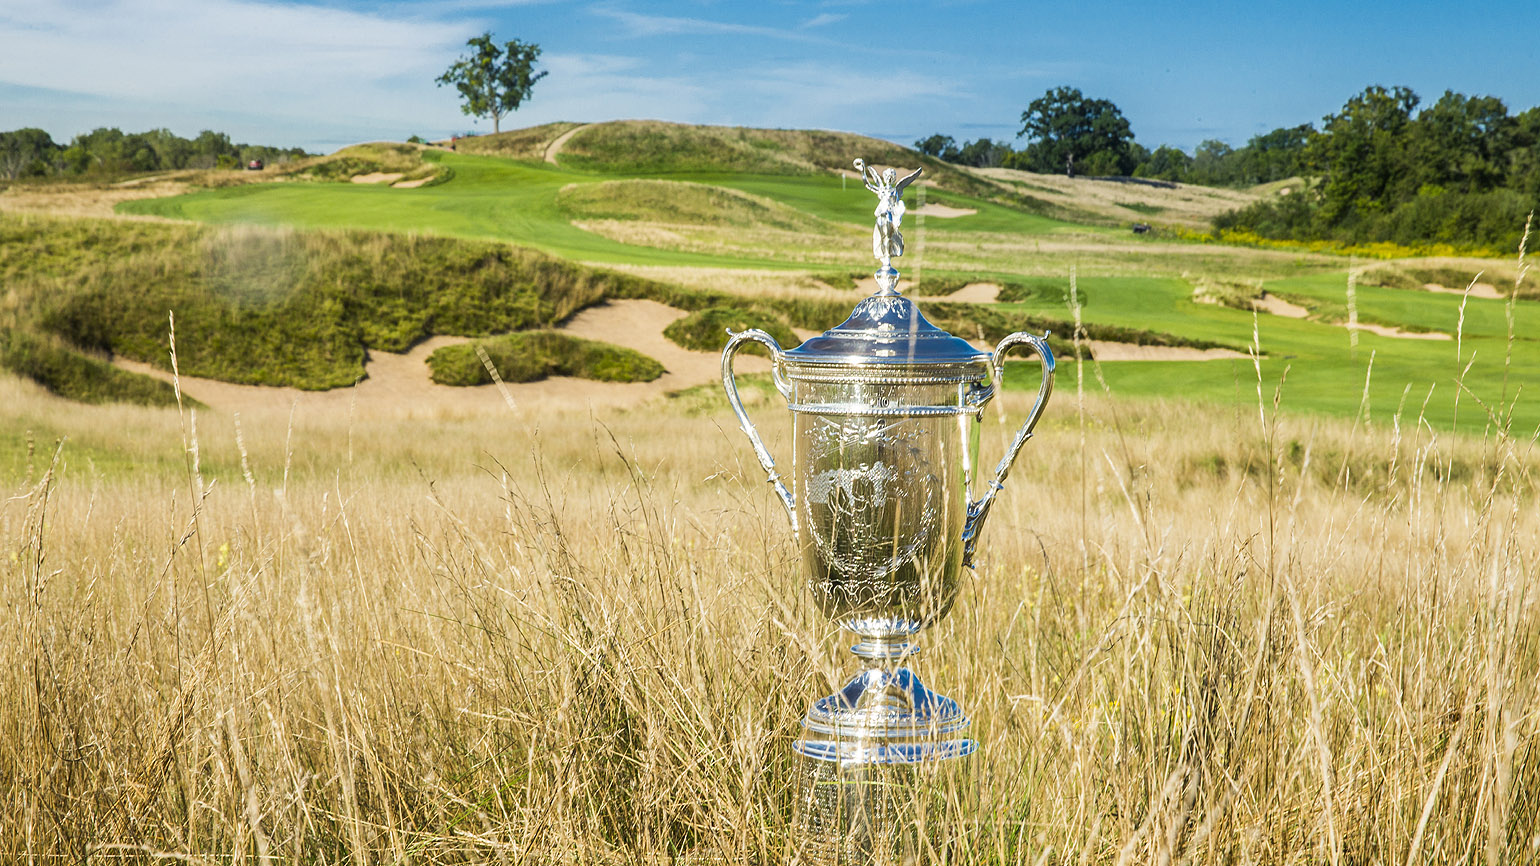 States Canada To Host Local Qualifying For Th US Open - Us open erin hills map